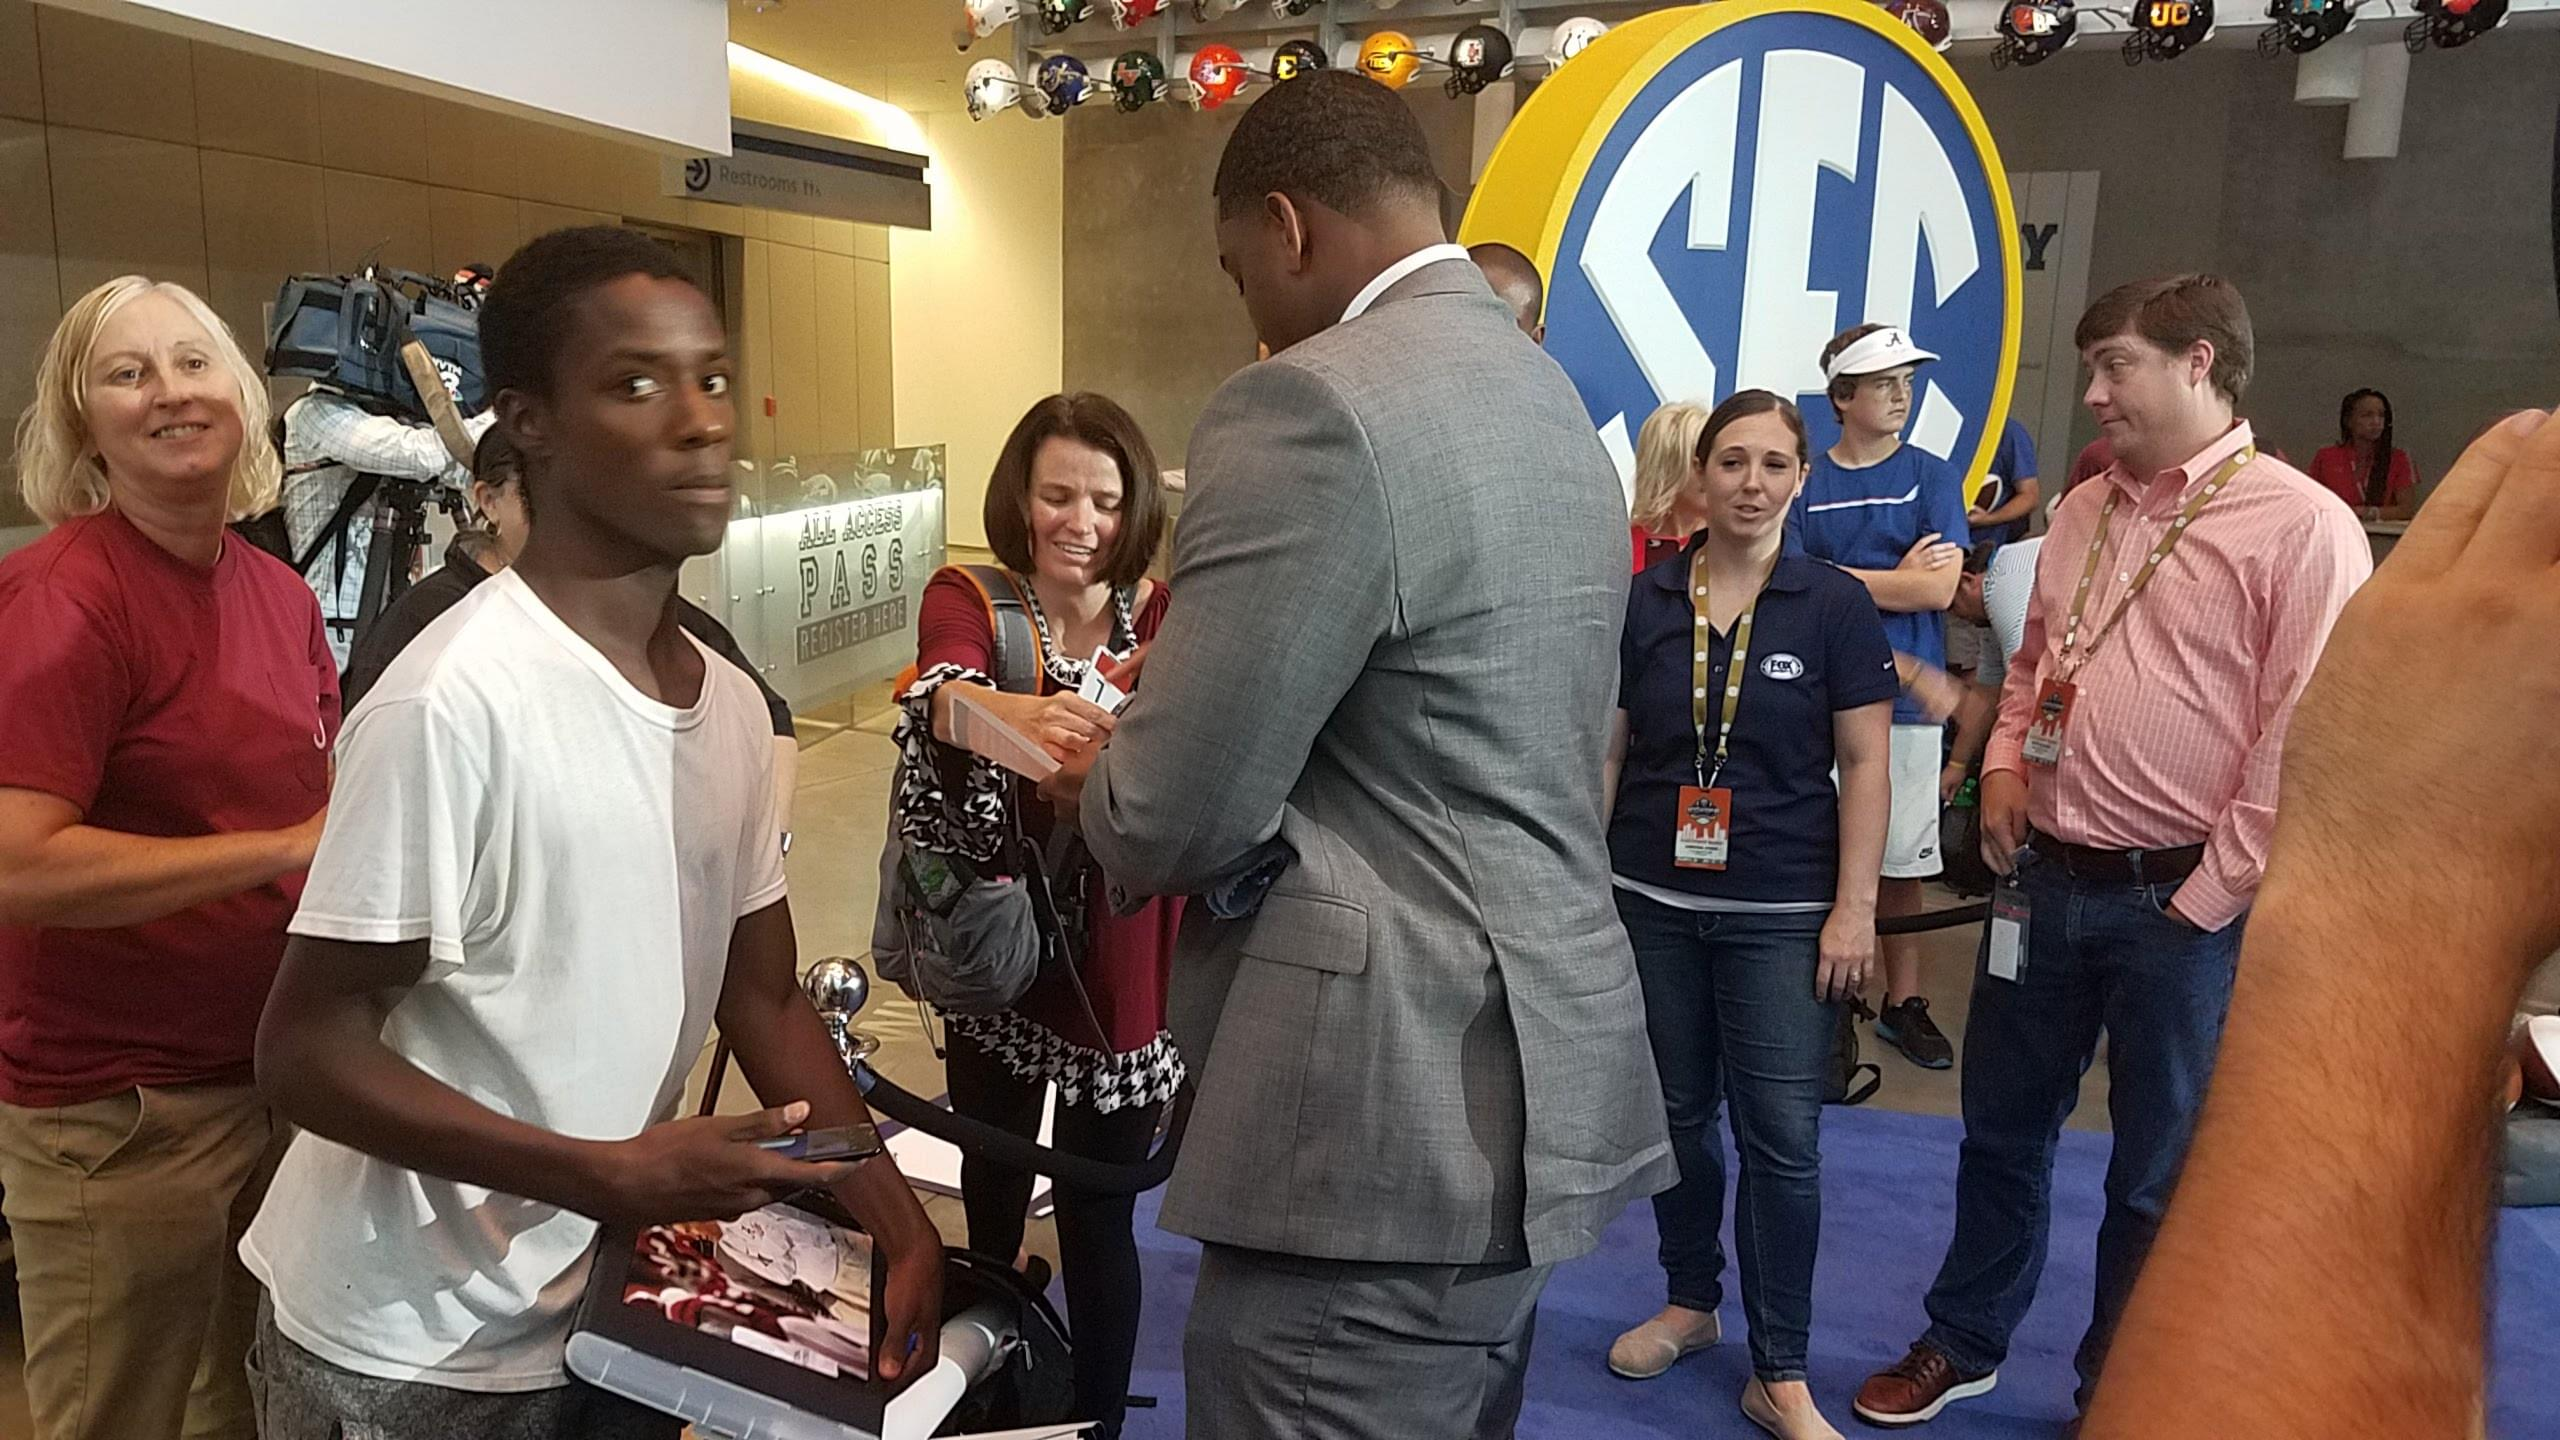 Vince's View: Images of the scenes and teams at #SECMD18